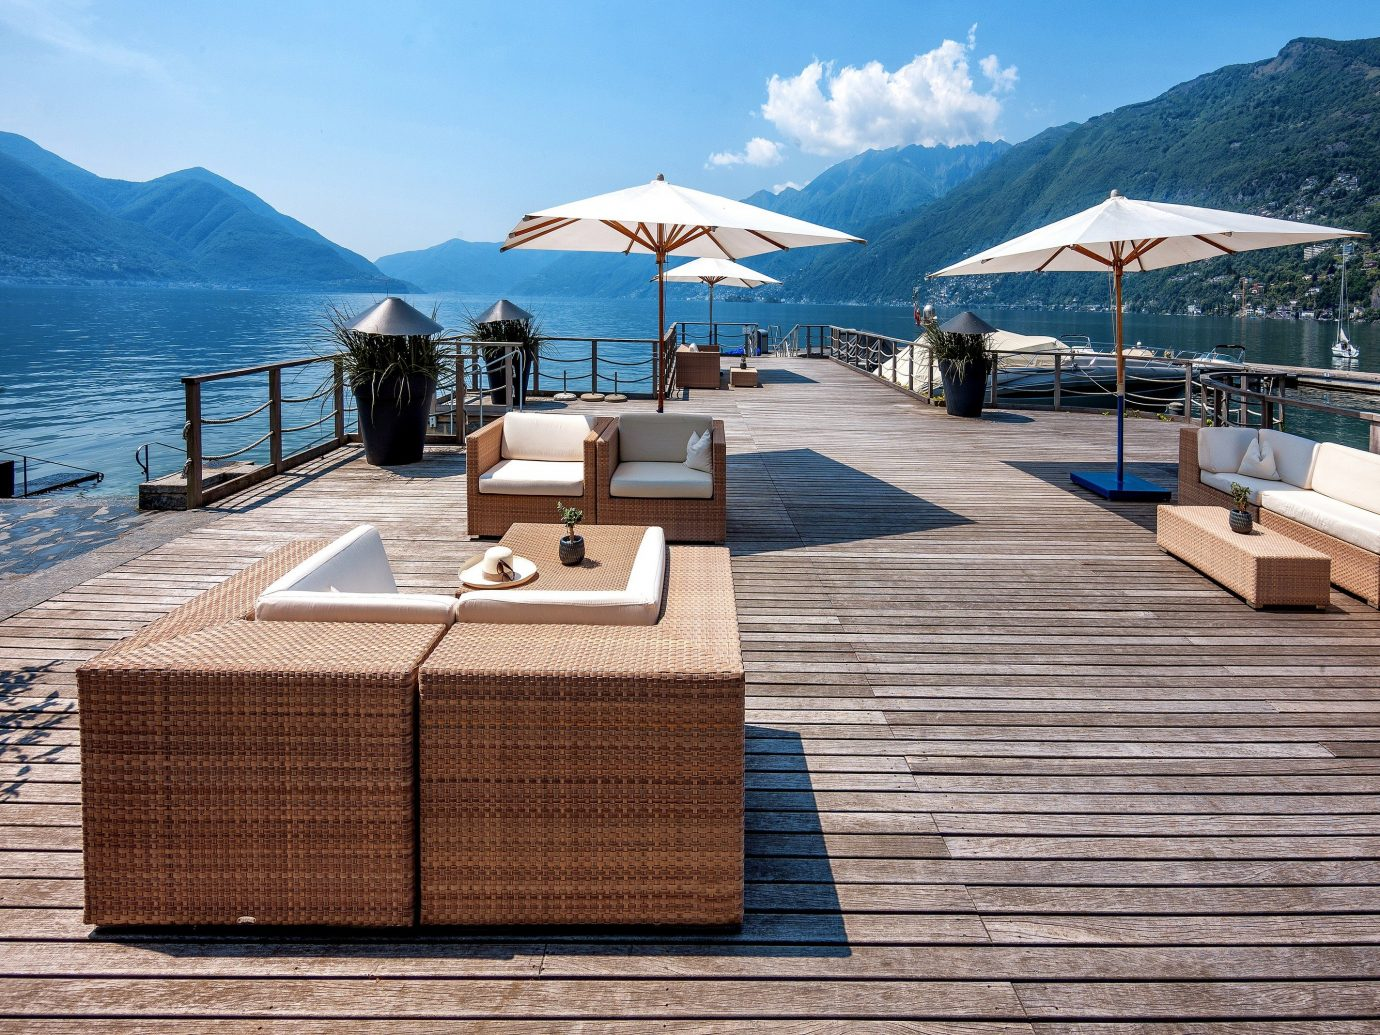 deck with chairs and umbrellas at Hotel Eden Roc